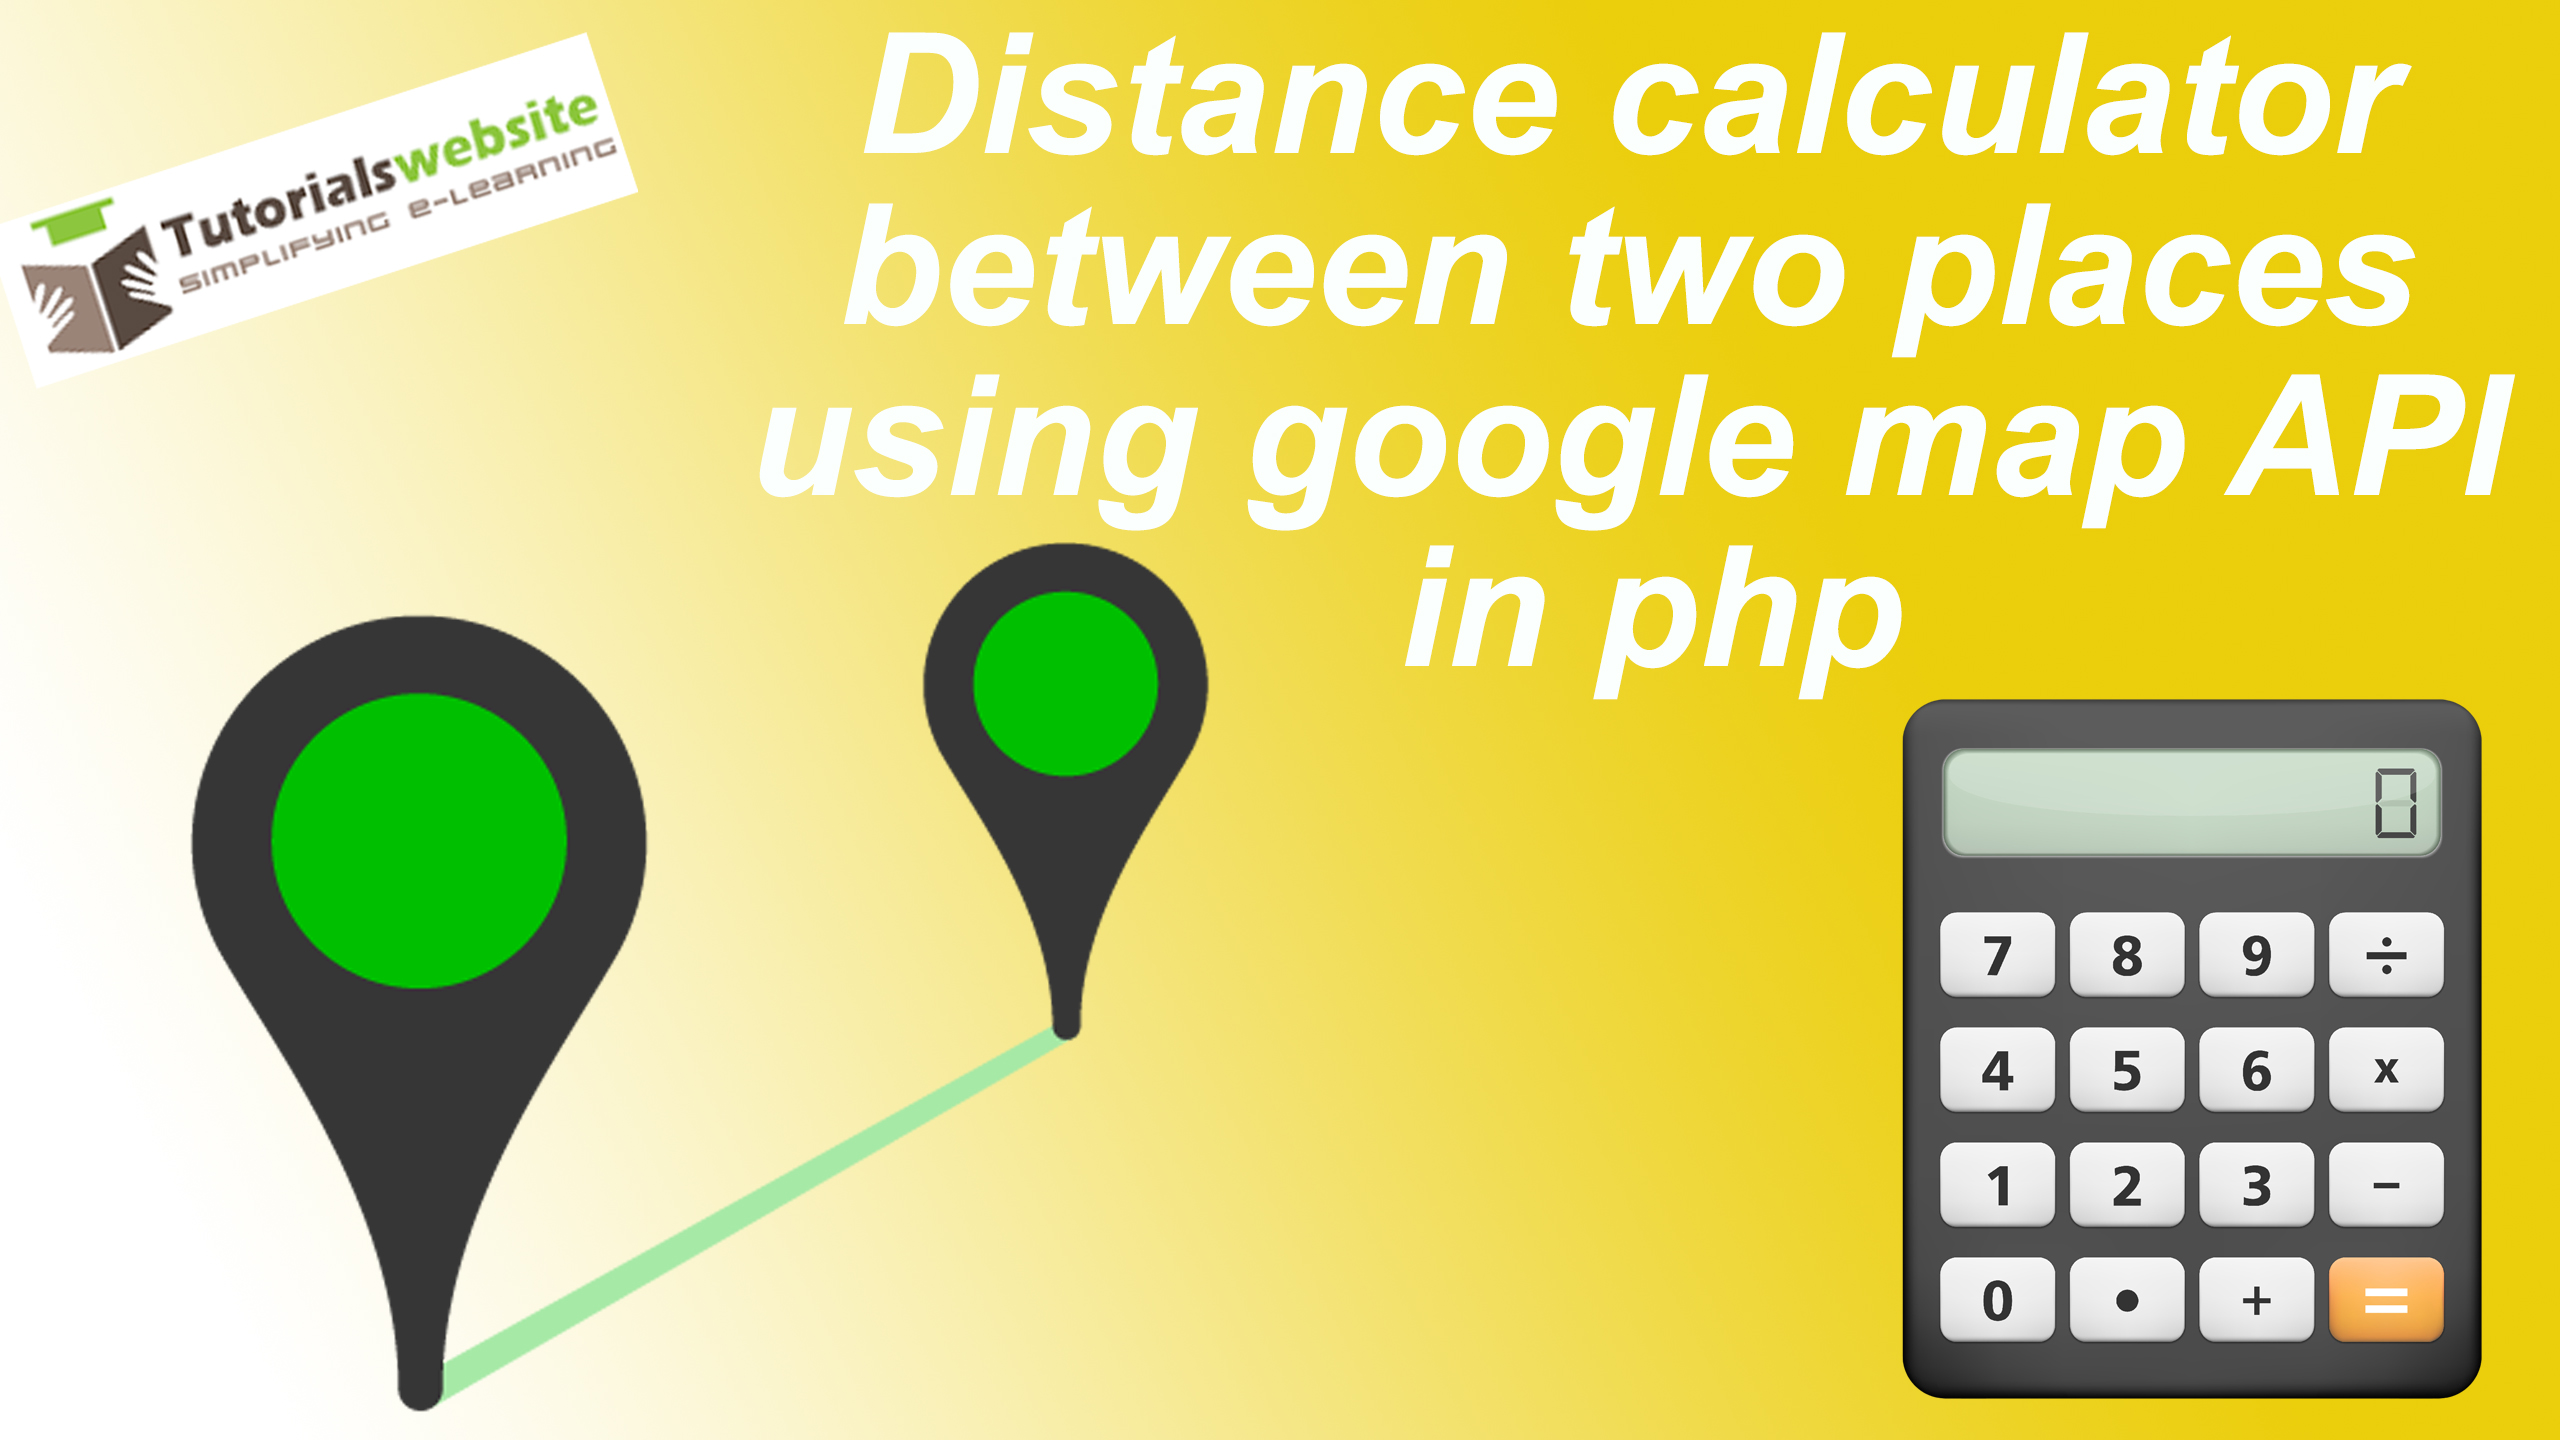 Distance calculator between two places using google map API in php on